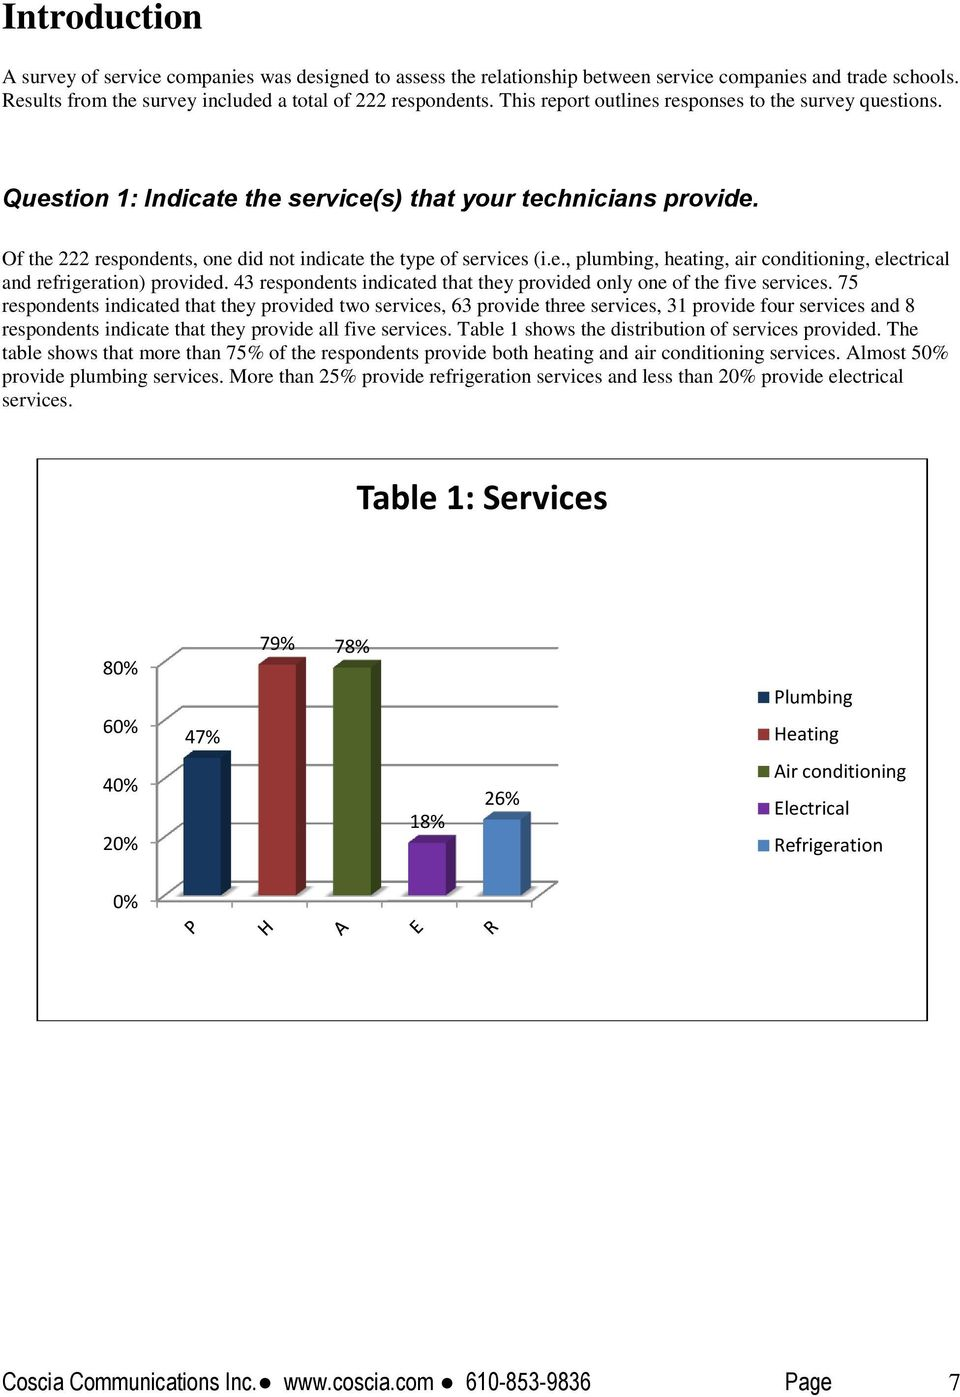 43 respondents indicated that they provided only one of the five services.